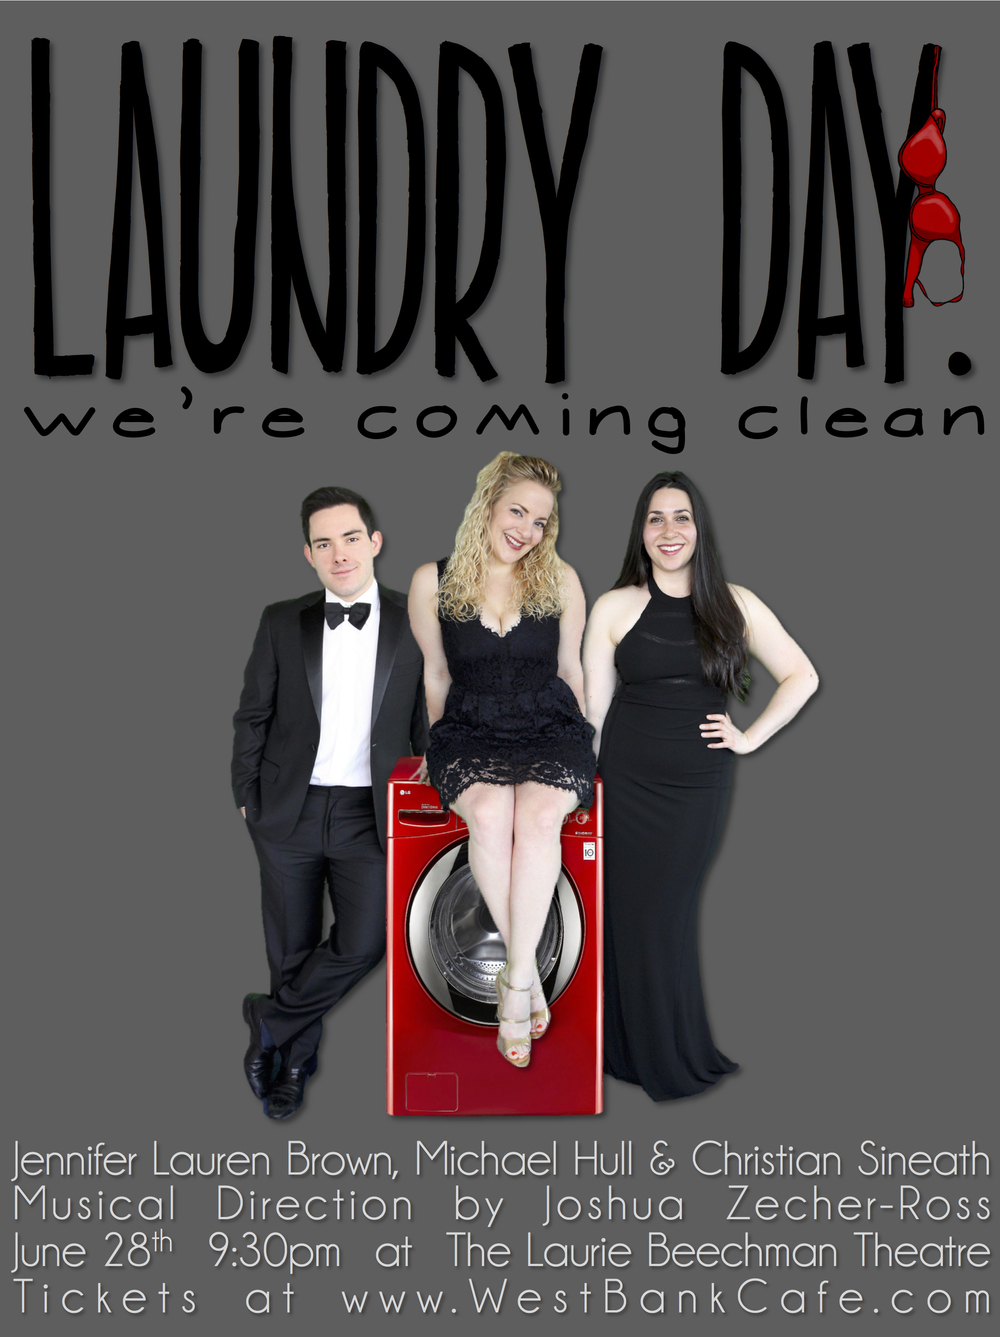 Laundry Day: We're Coming Clean poster at The Laurie Beechman Theatre